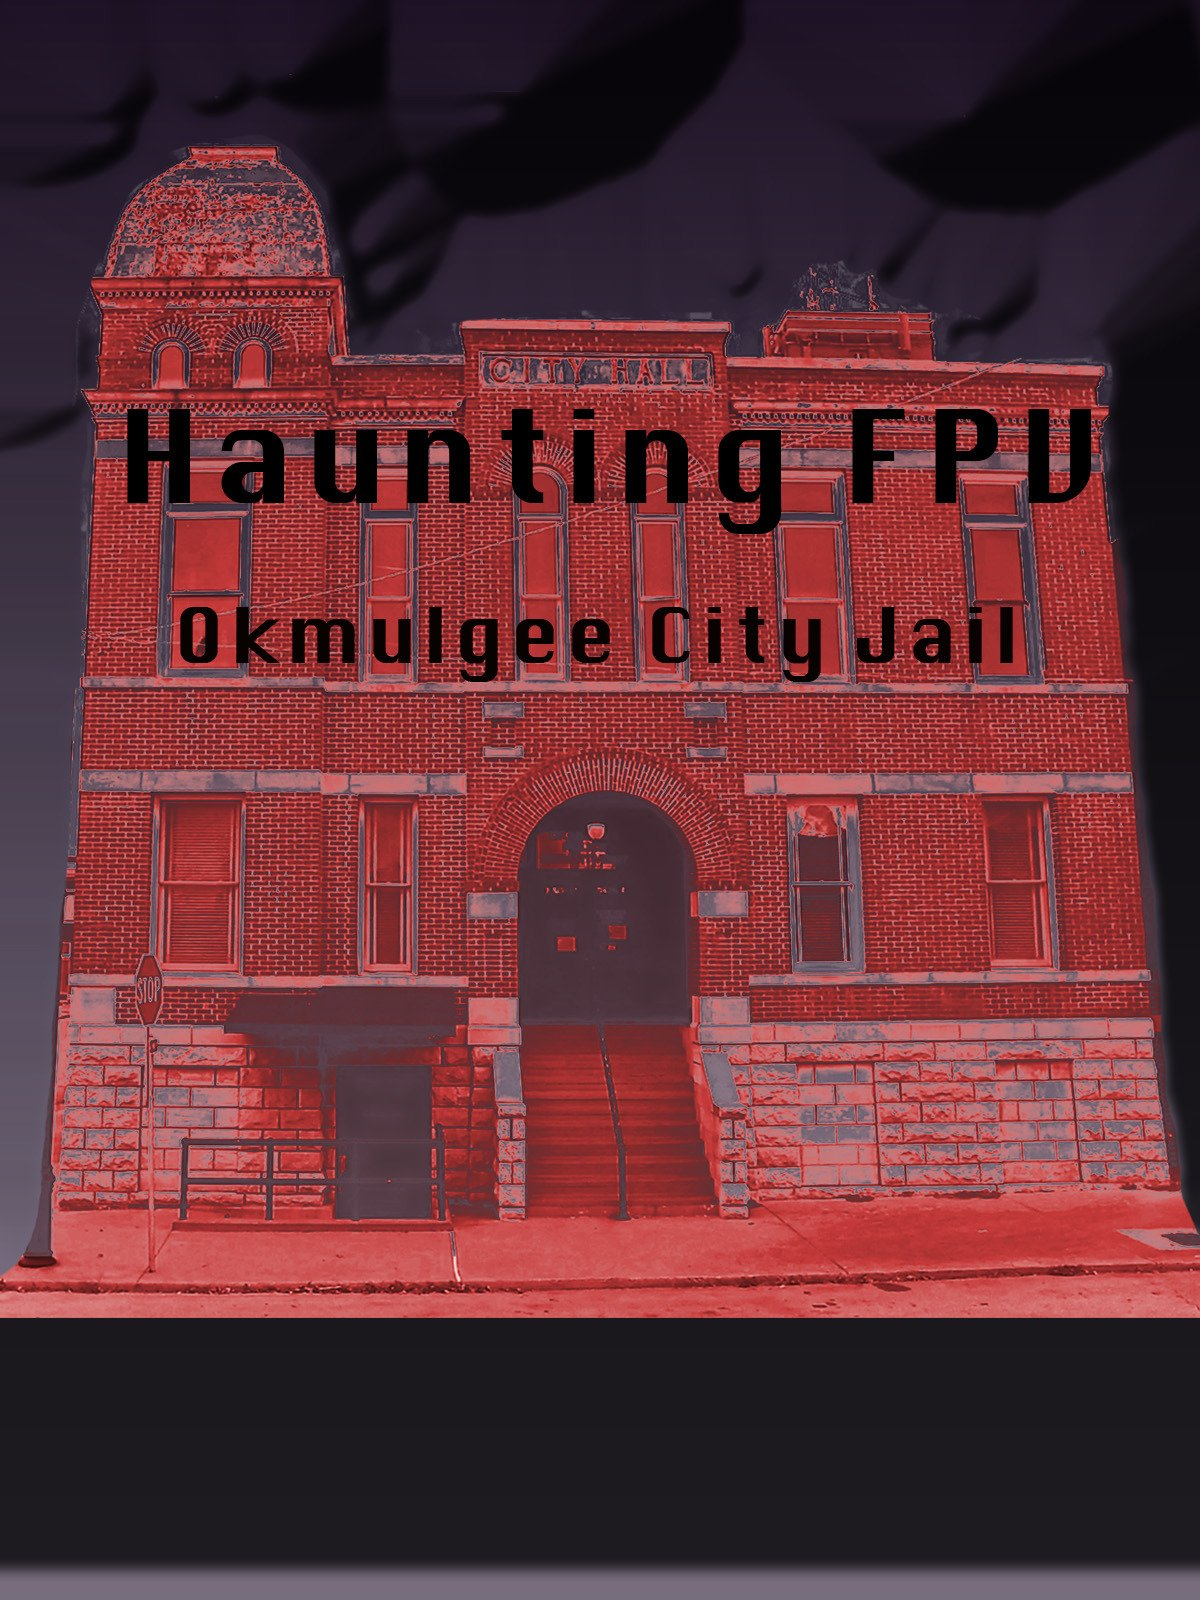 Haunting FPV: The Okmulgee City Jail